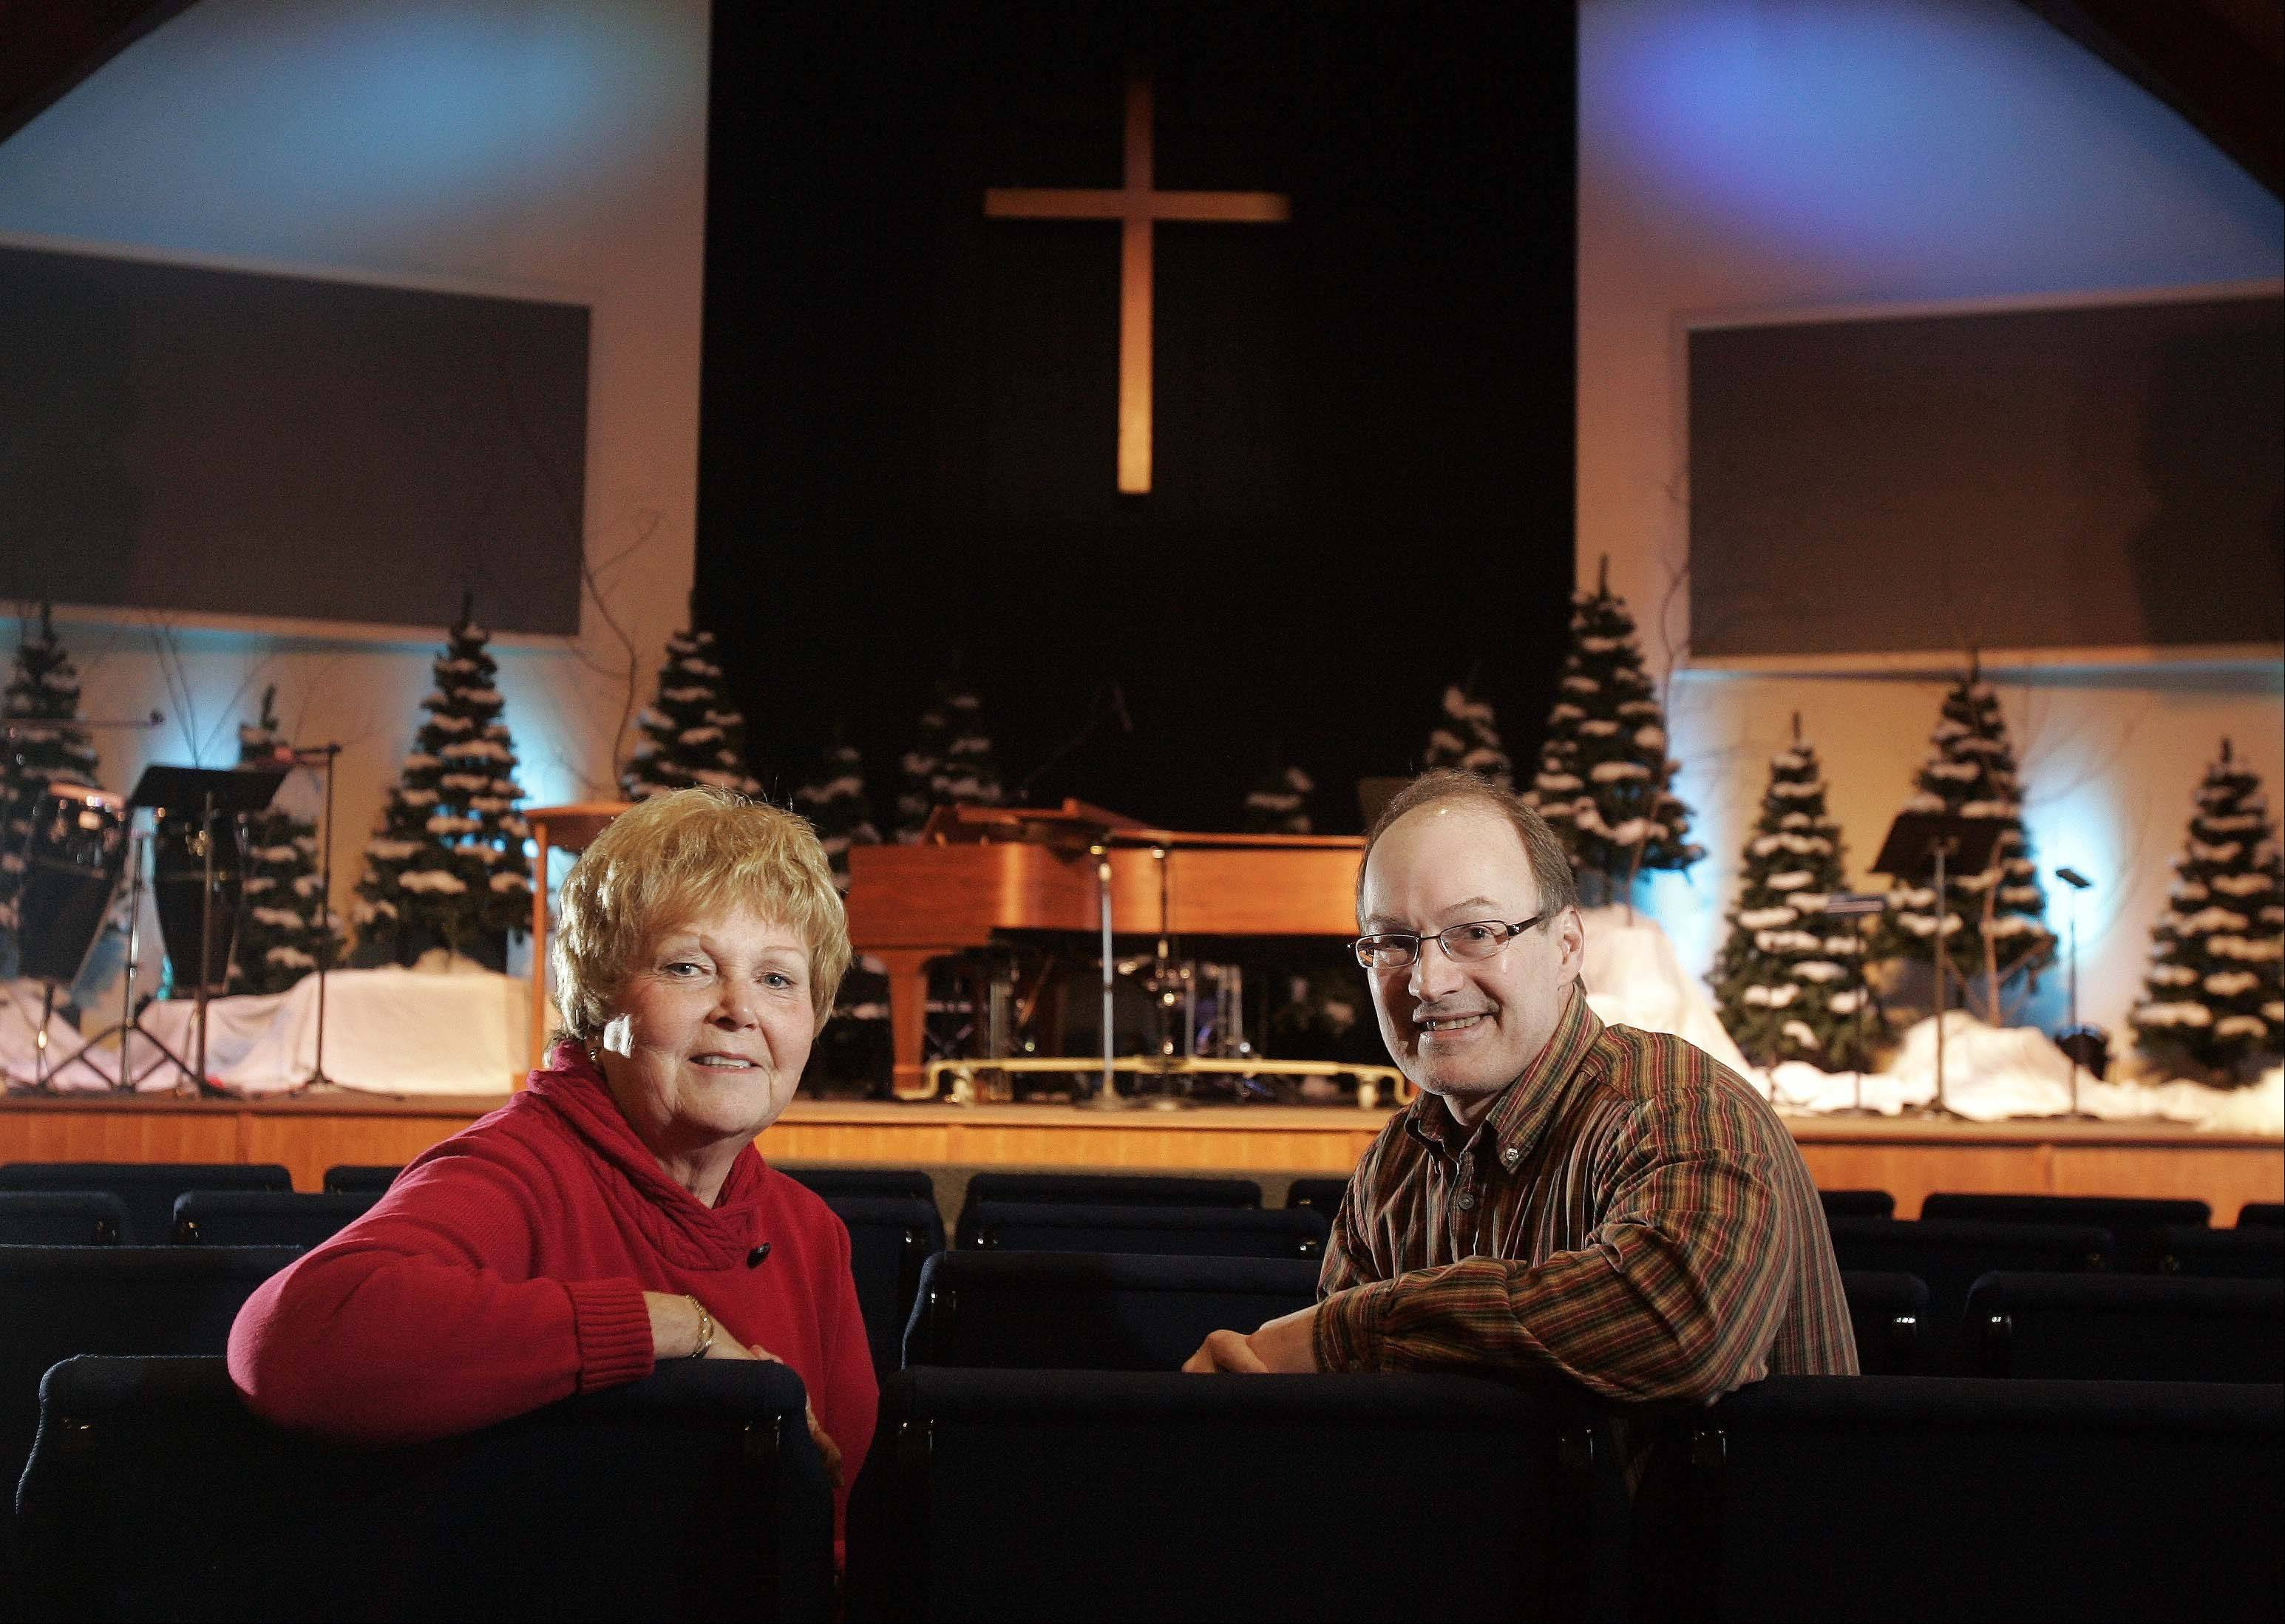 Becky Towner of Elgin is the chairwoman of 175th anniversary committee of First Baptist Church in Elgin. Here she is pictured with Senior Pastor Greg Huguley, who's been at the church for five years.